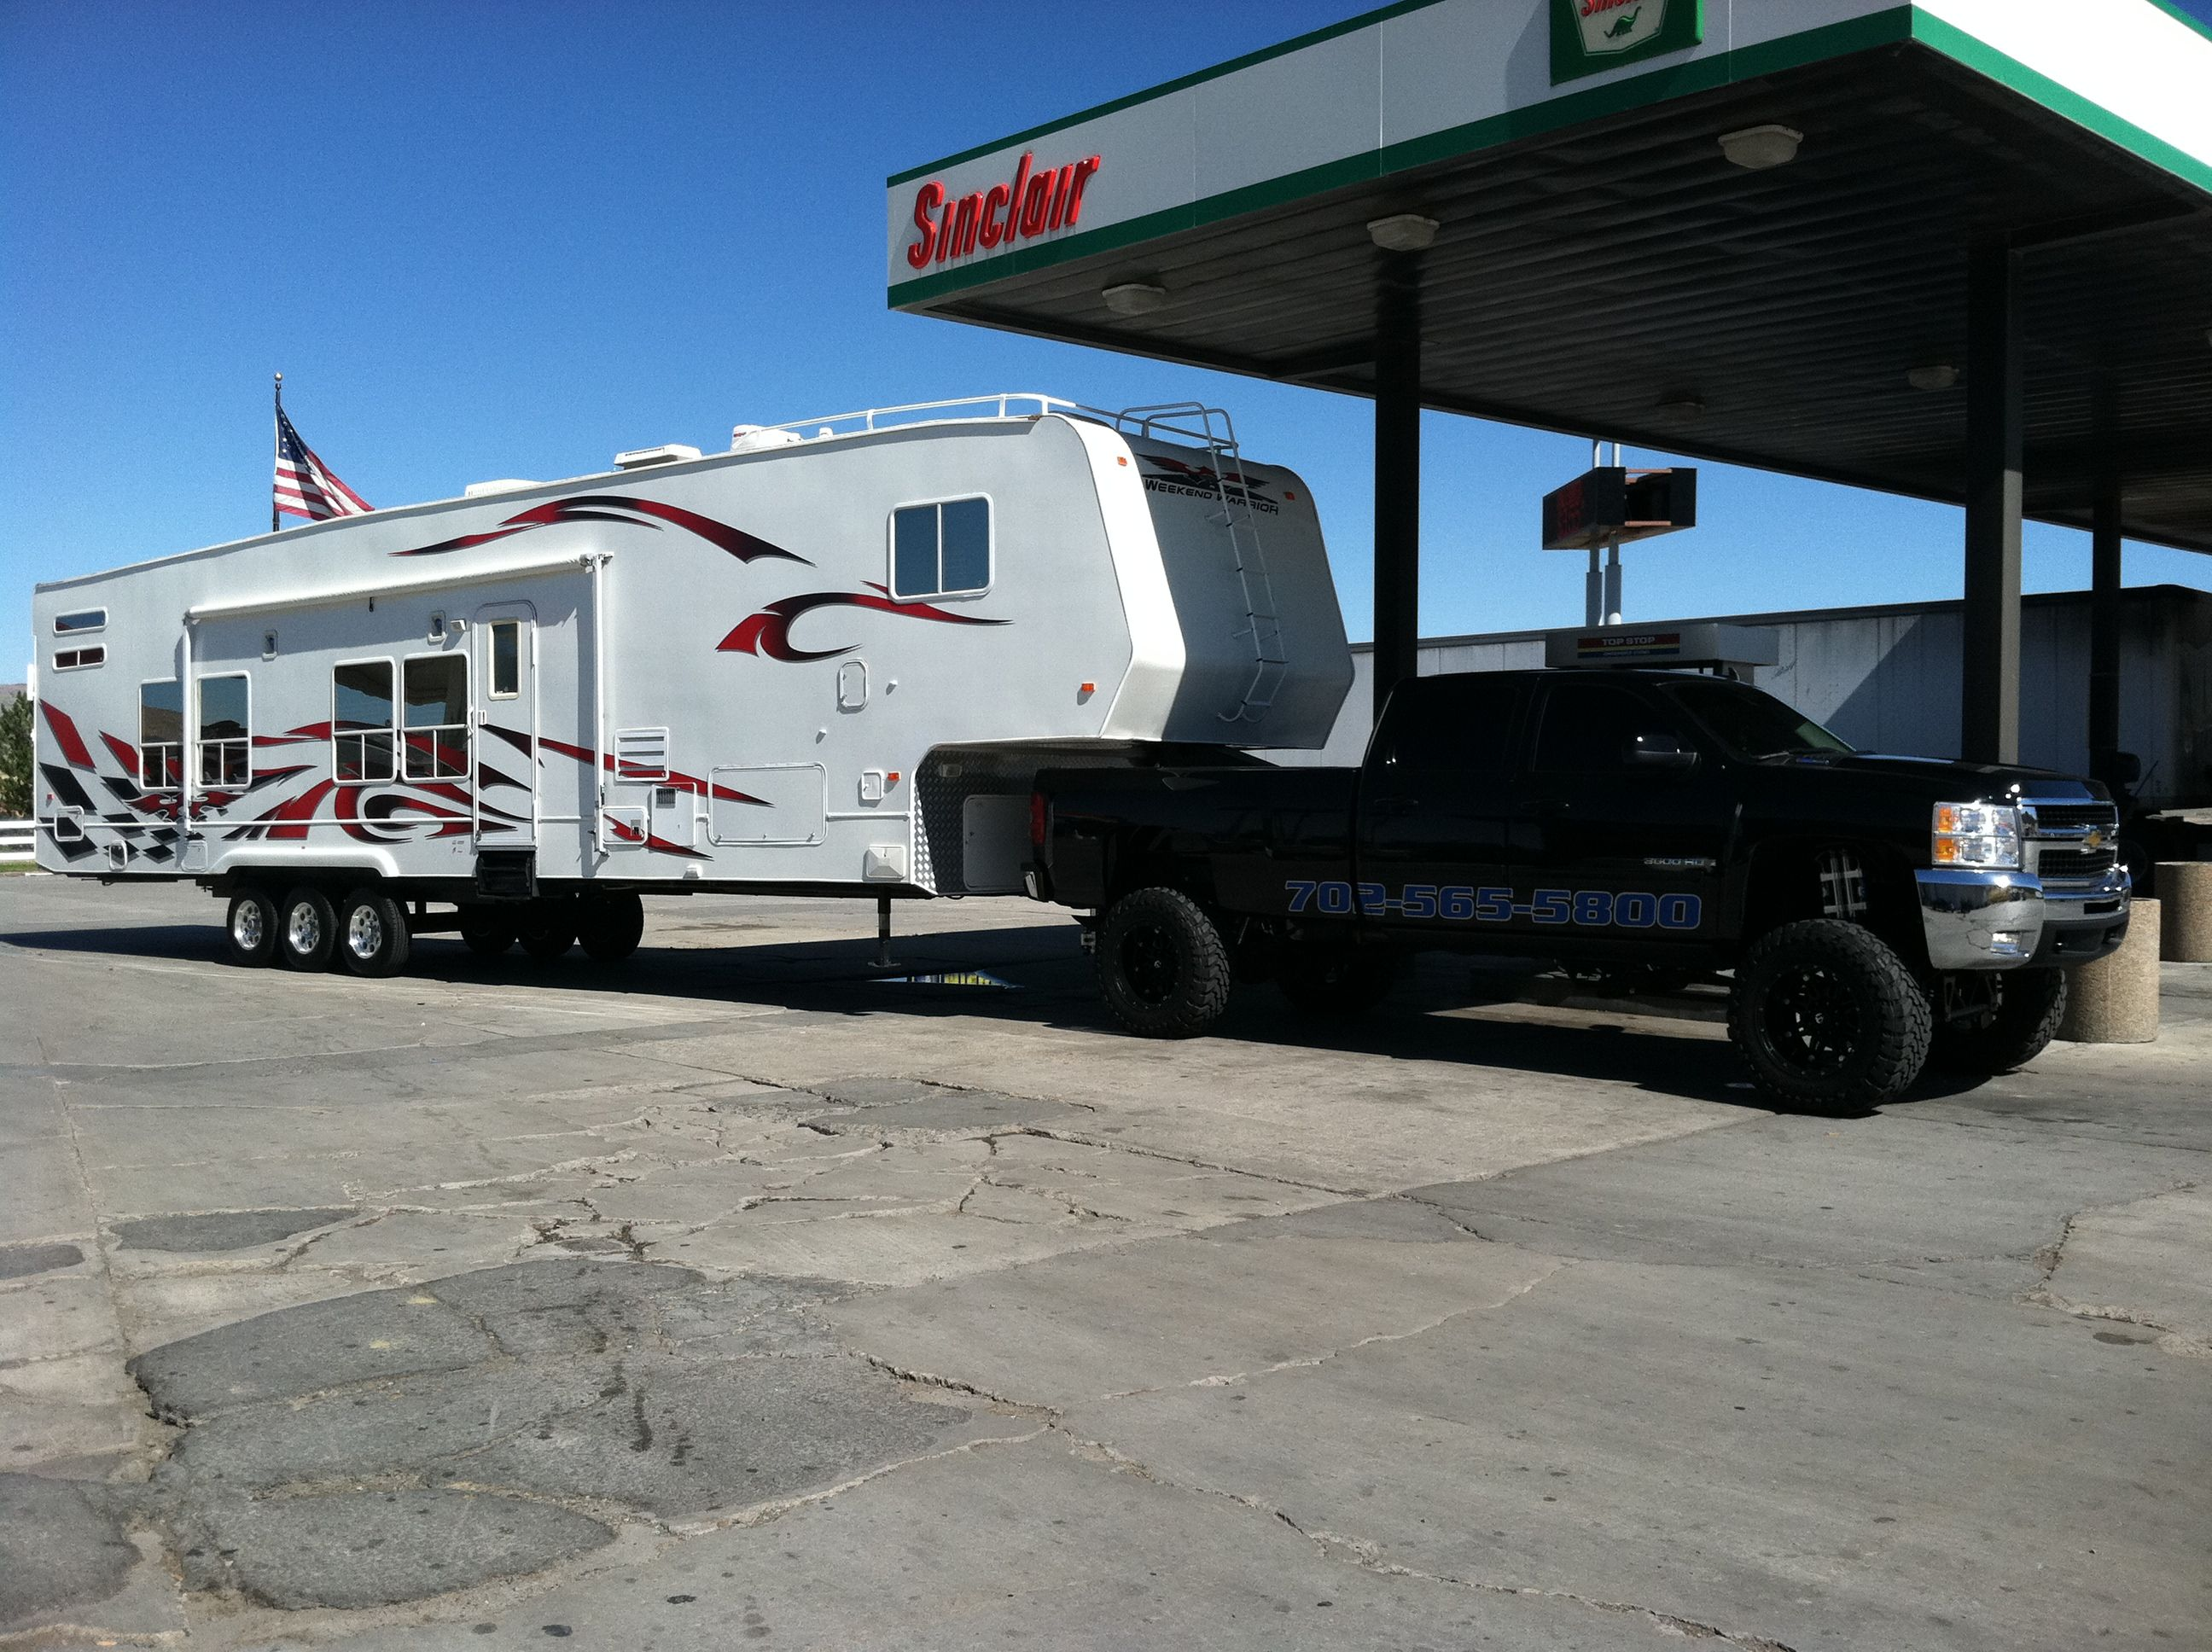 Chevy 3500 With 12 Cst Lift Kit Towing 52 Toy Hauler